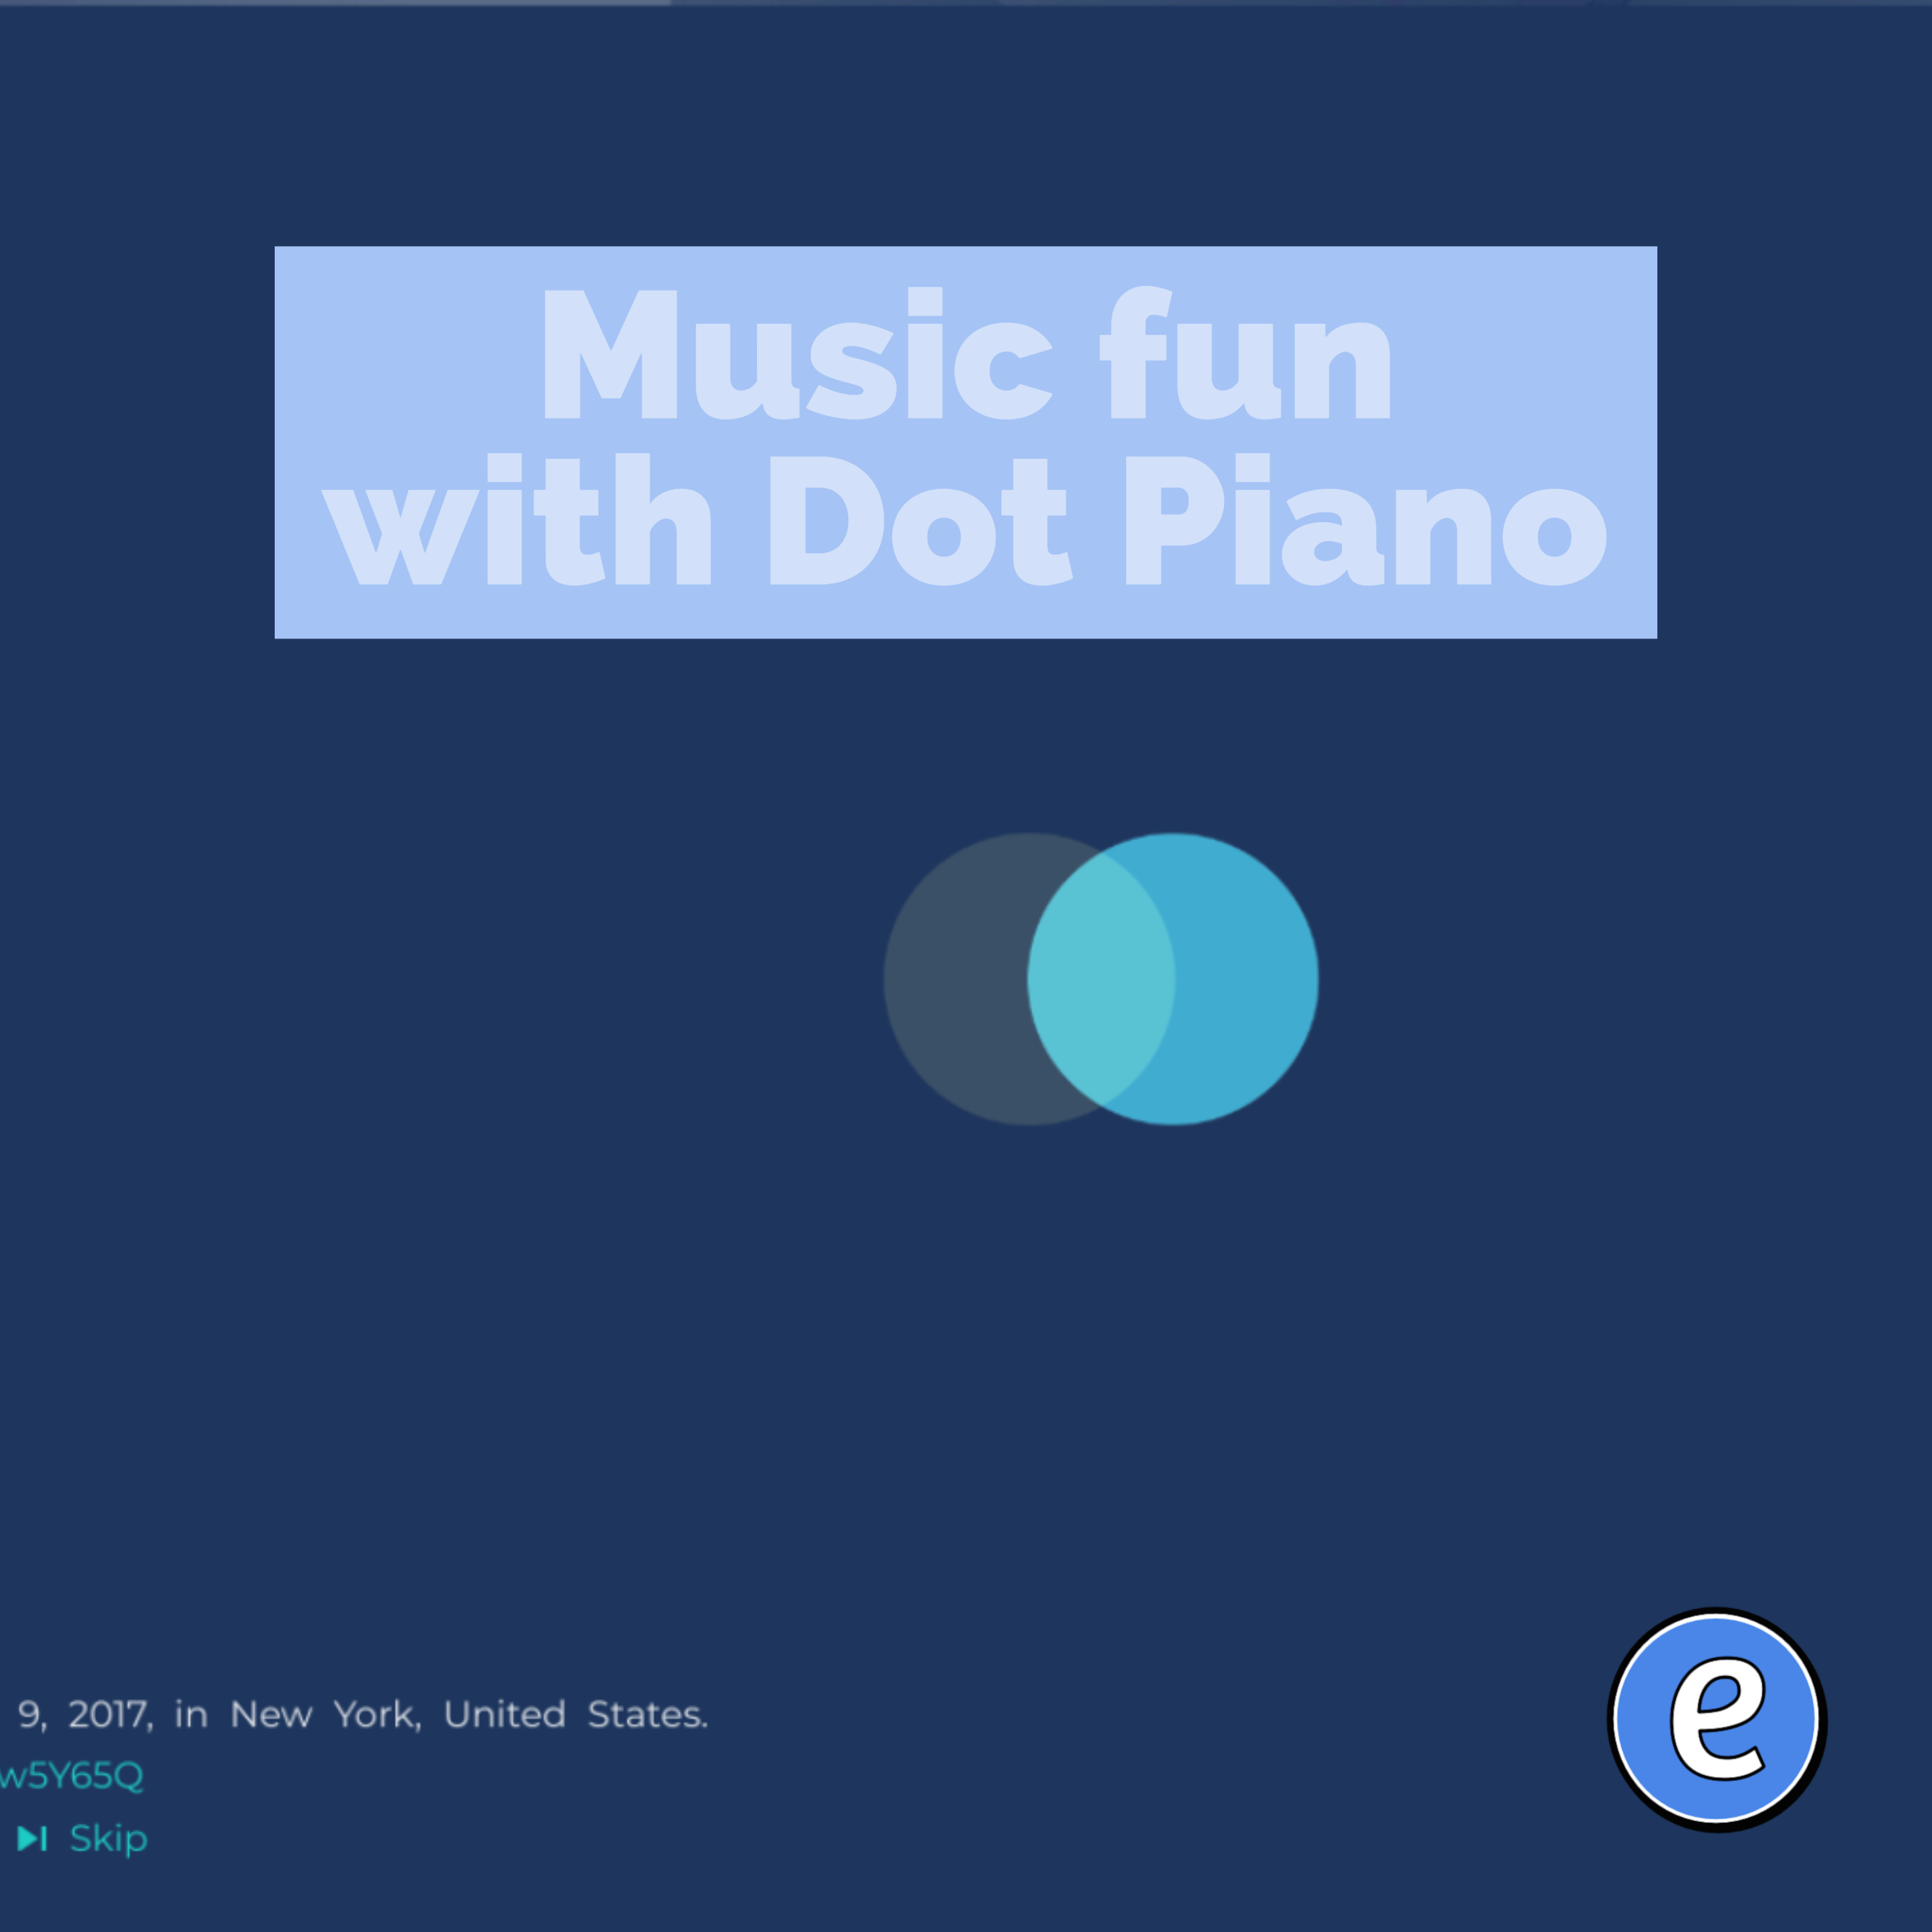 Music fun with Dot Piano